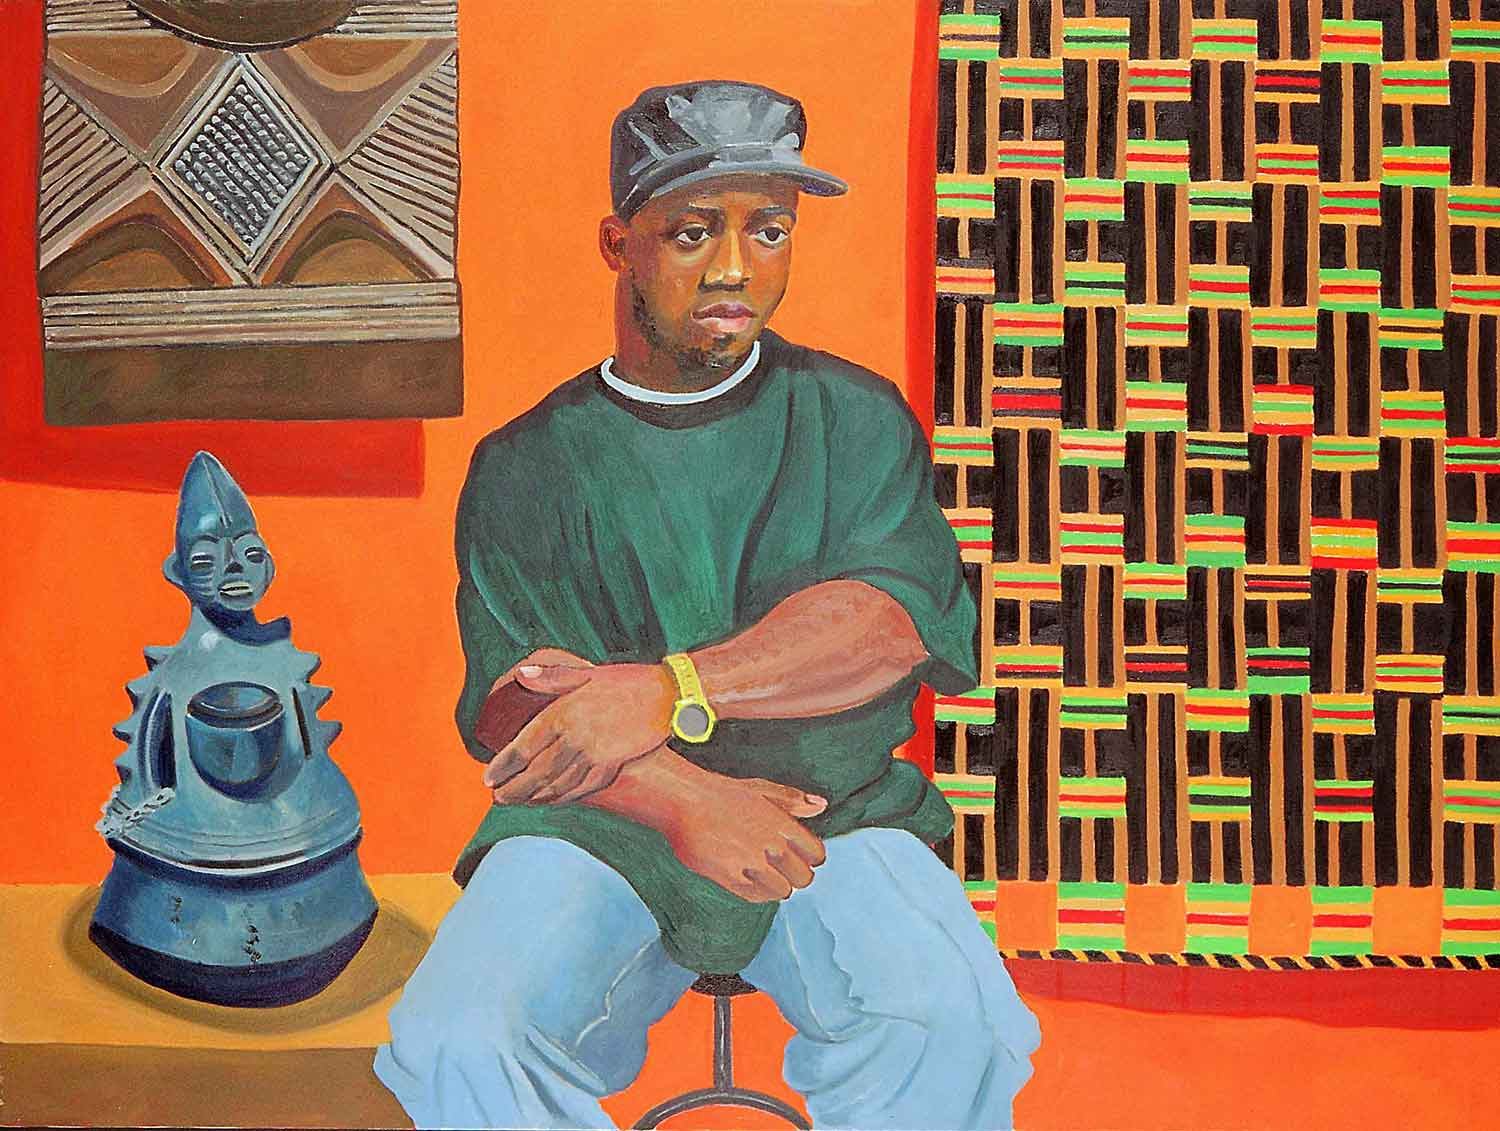 Kerby Dort, Portraits of Science Explorers, Newark, Oil on canvas, Mary Alice Copp